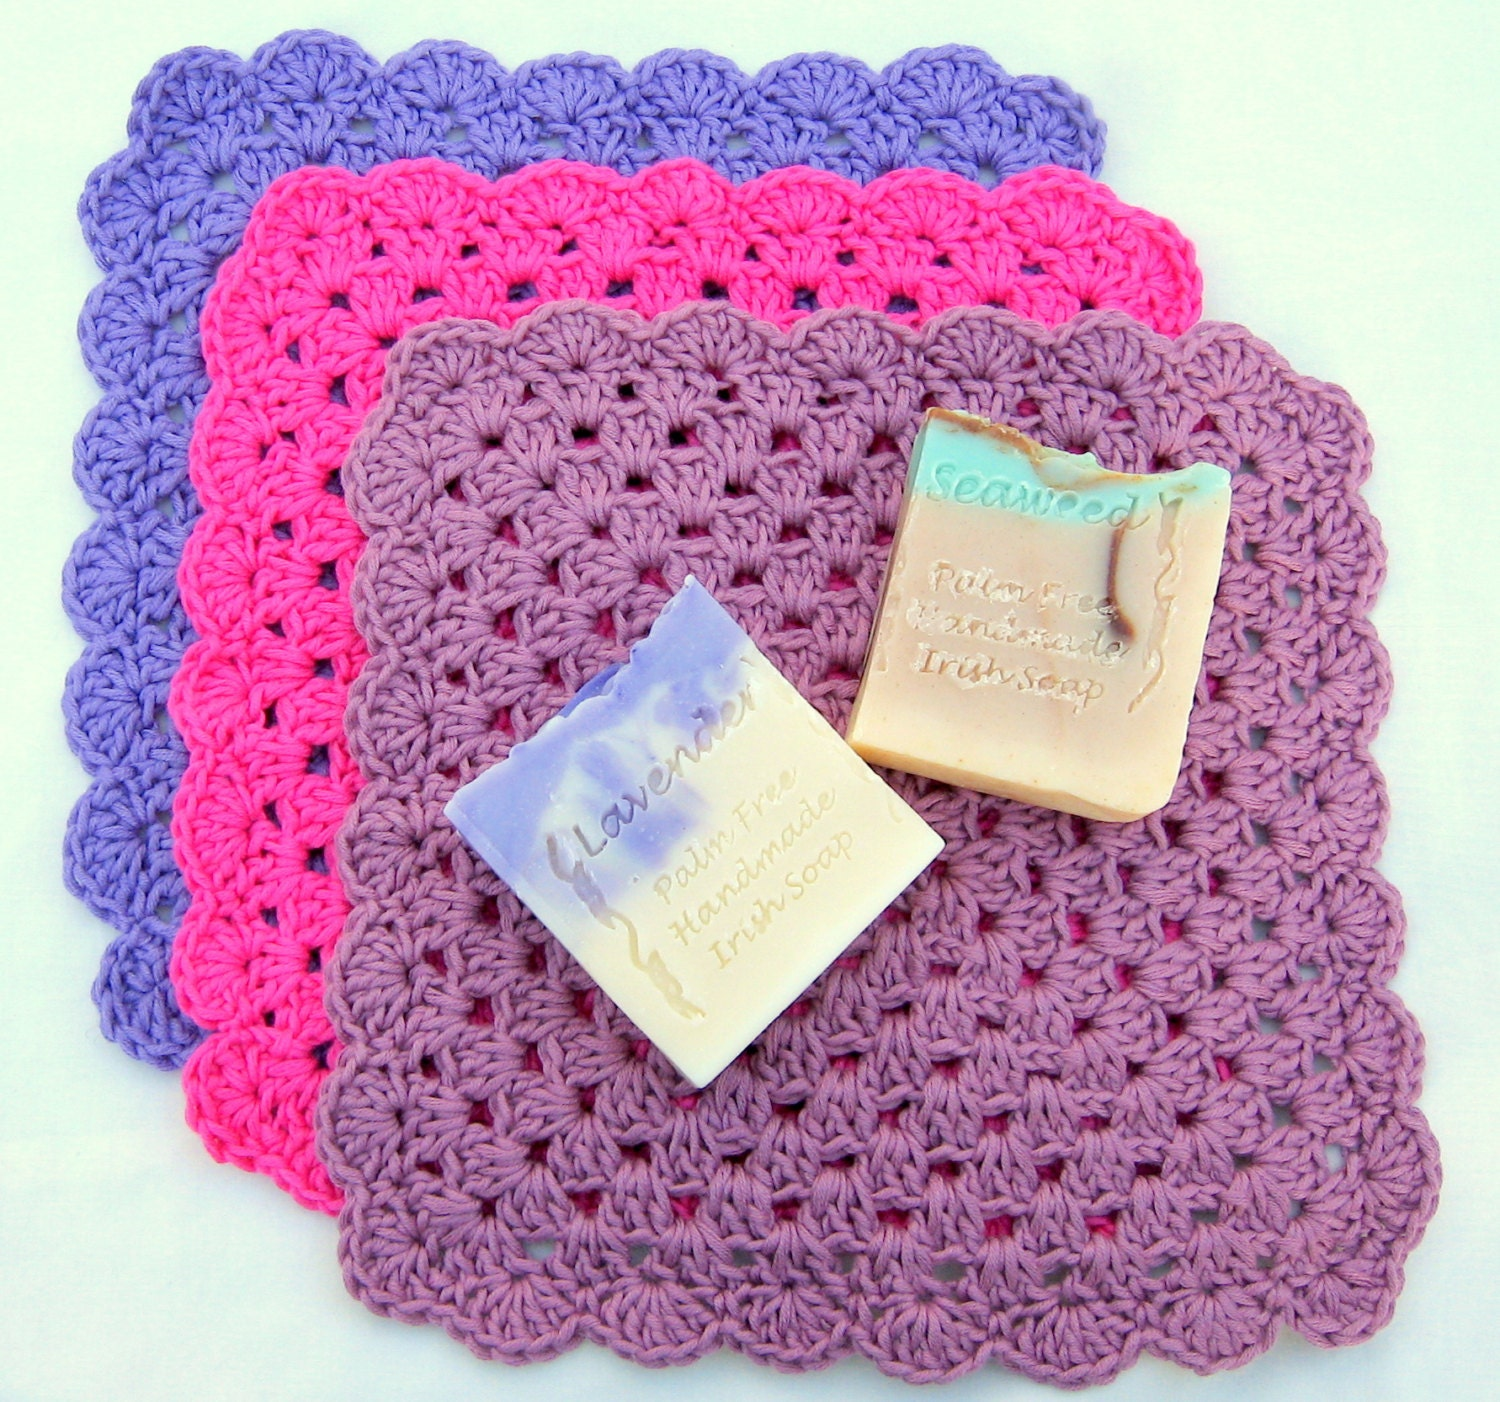 Crochet Granny Square Dishcloth Pattern : Crochet Flannel Pattern Granny Square Design UK version